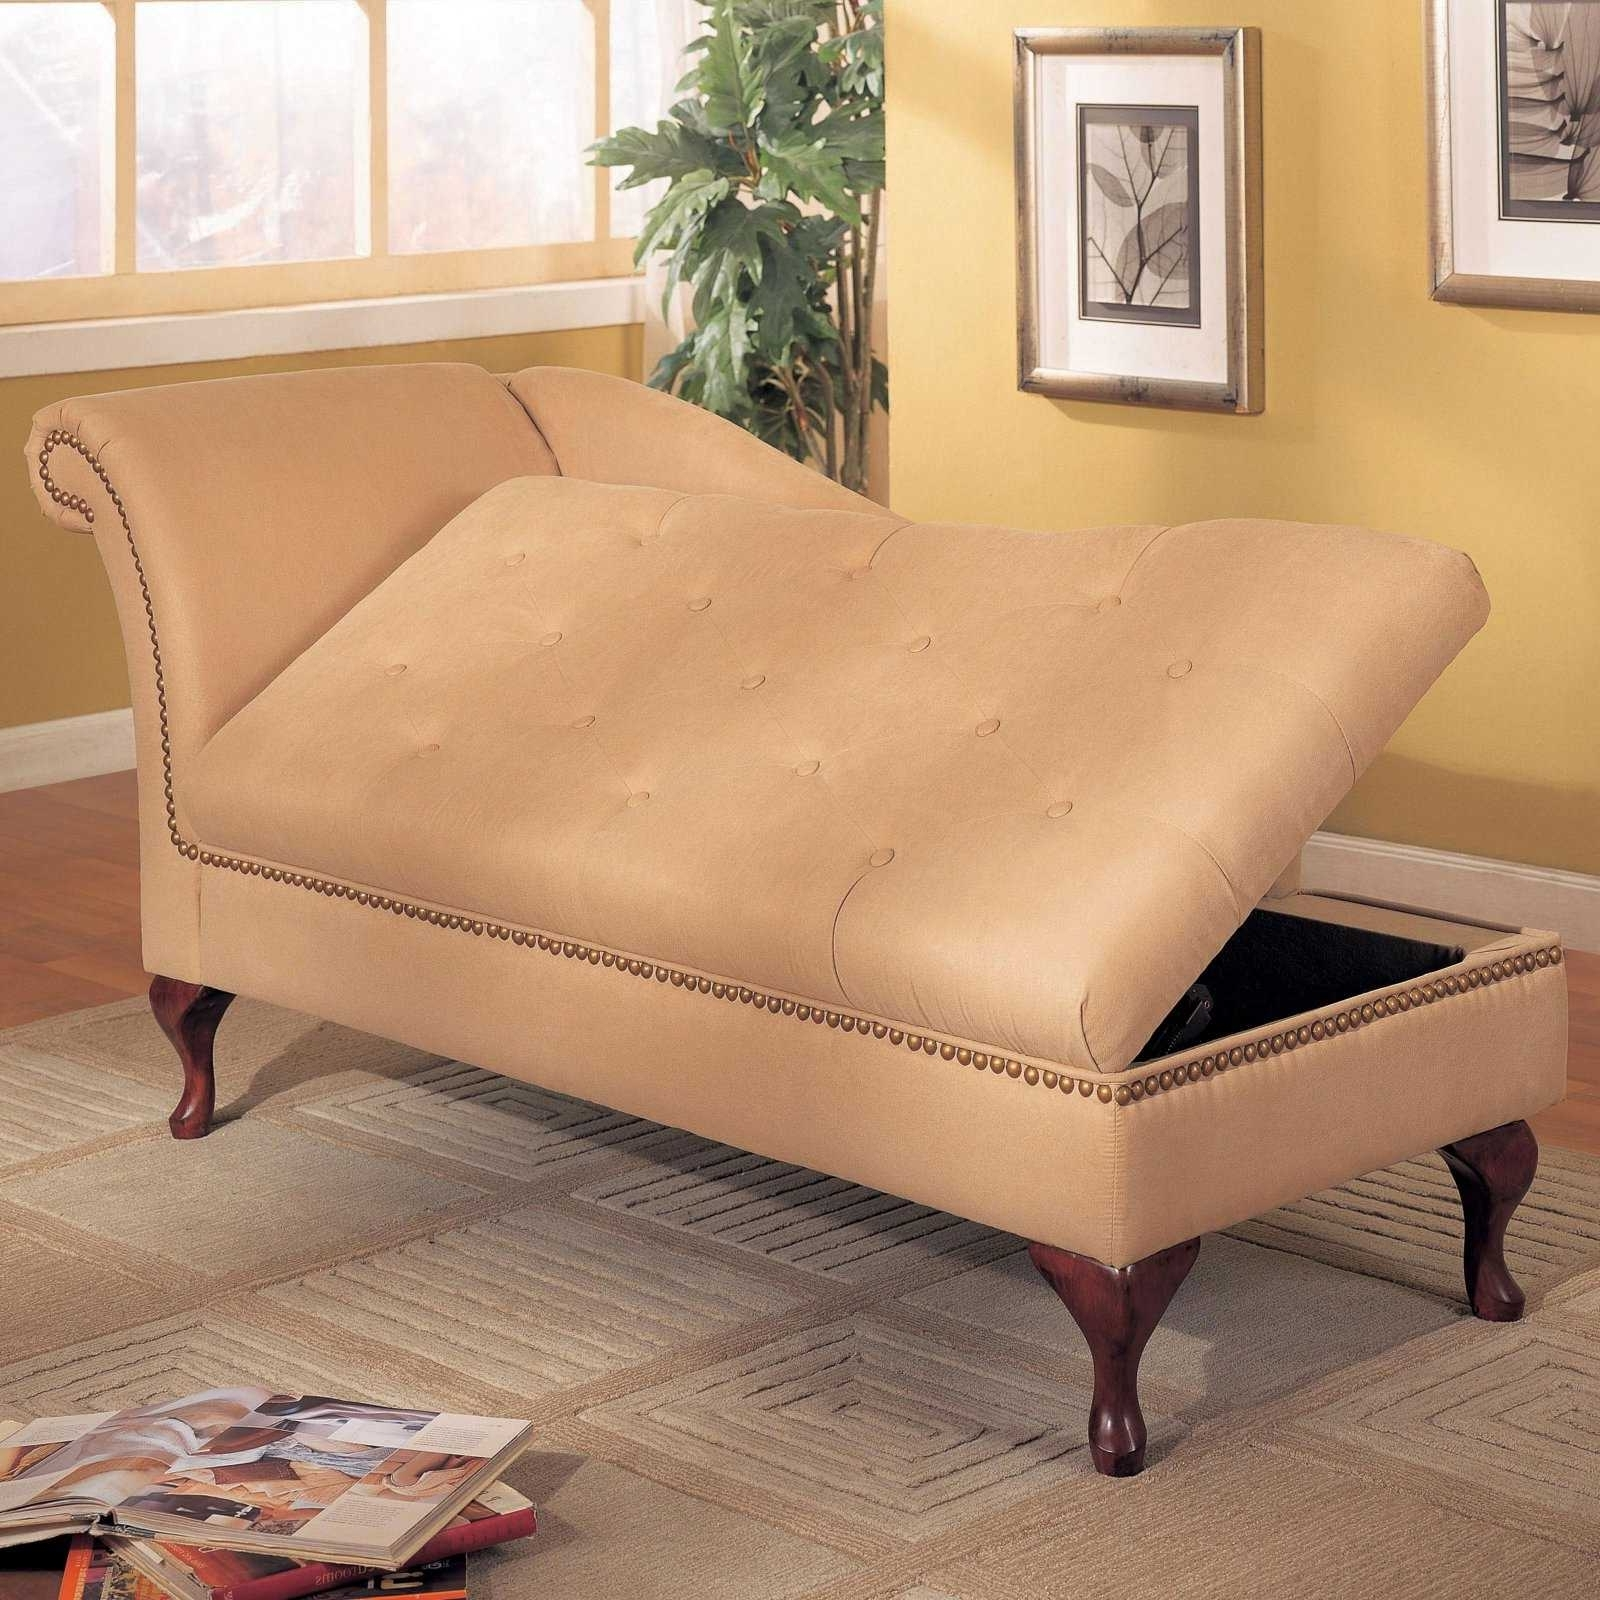 Lounge Chair : Outdoor White Leather Chaise Lounge Indoor Chaise Within Most Popular White Indoor Chaise Lounges (View 8 of 15)